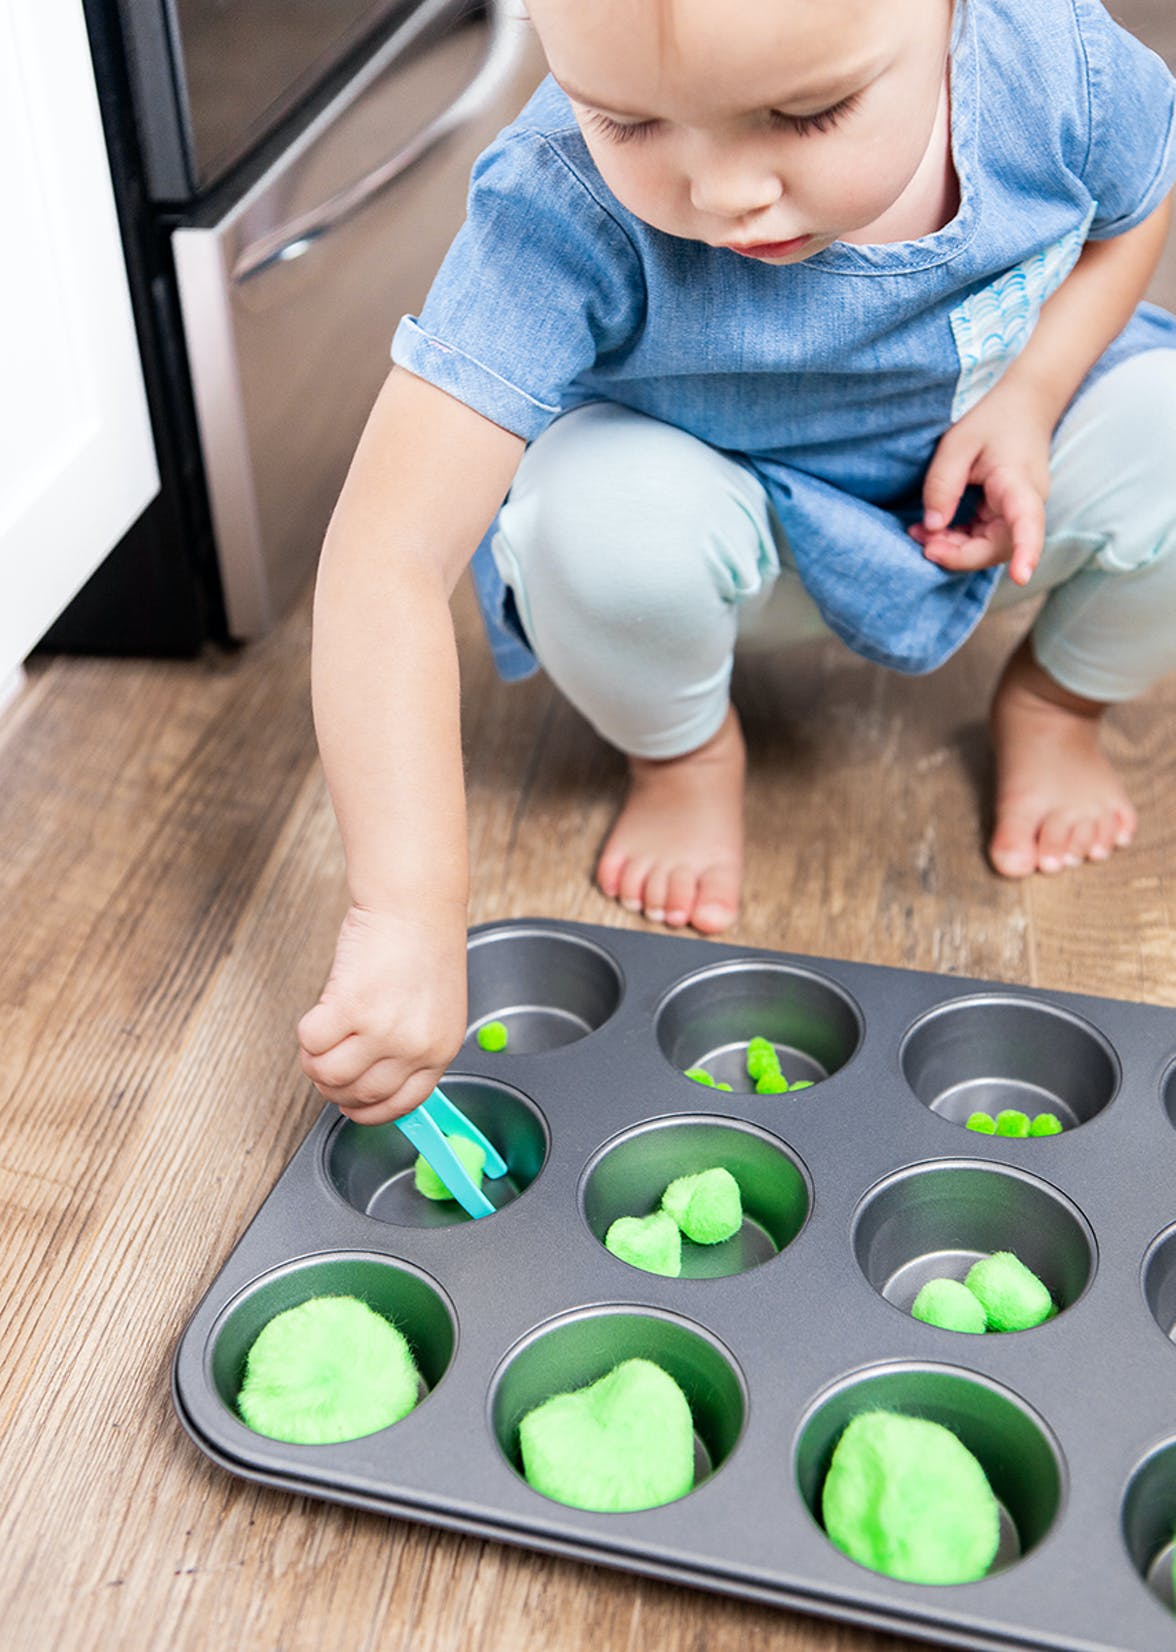 Young child playing with pom poms in a muffin tin